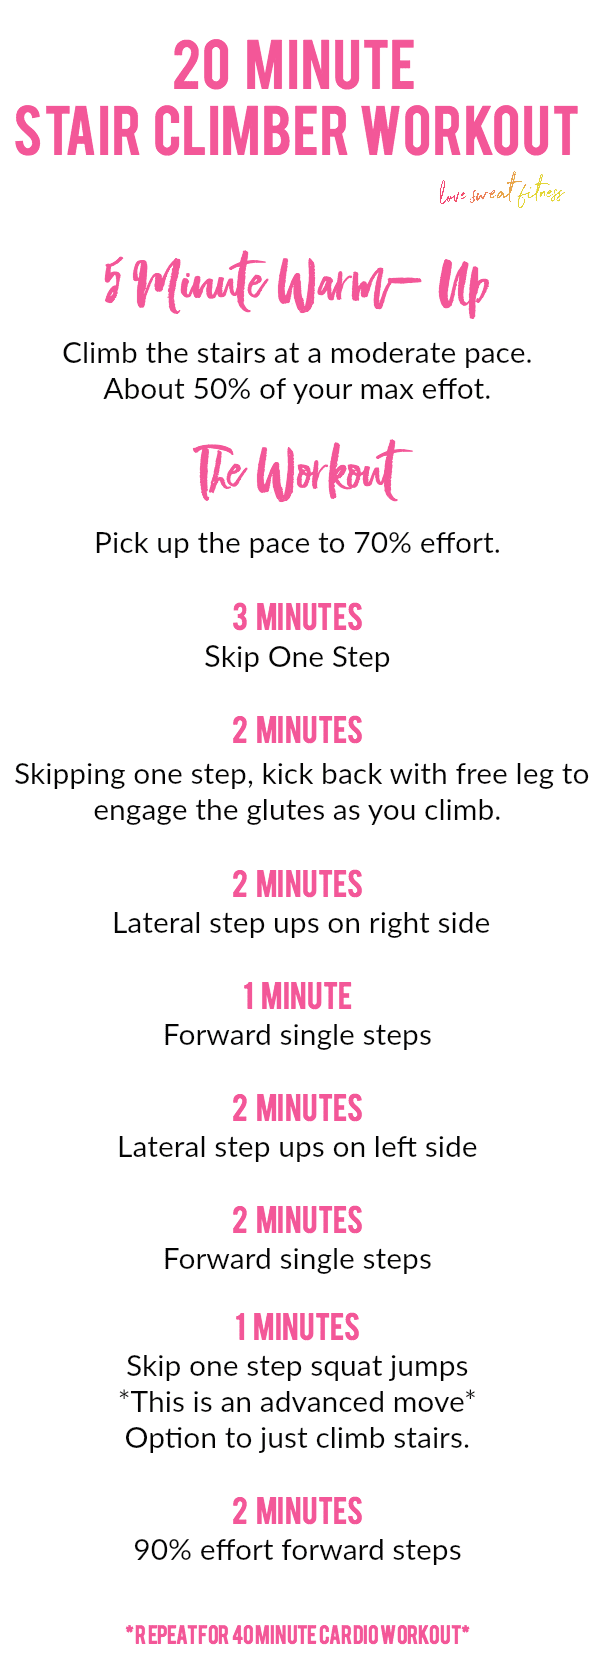 Cardio Workouts 3 Cradio Printable Stair Climber Workout